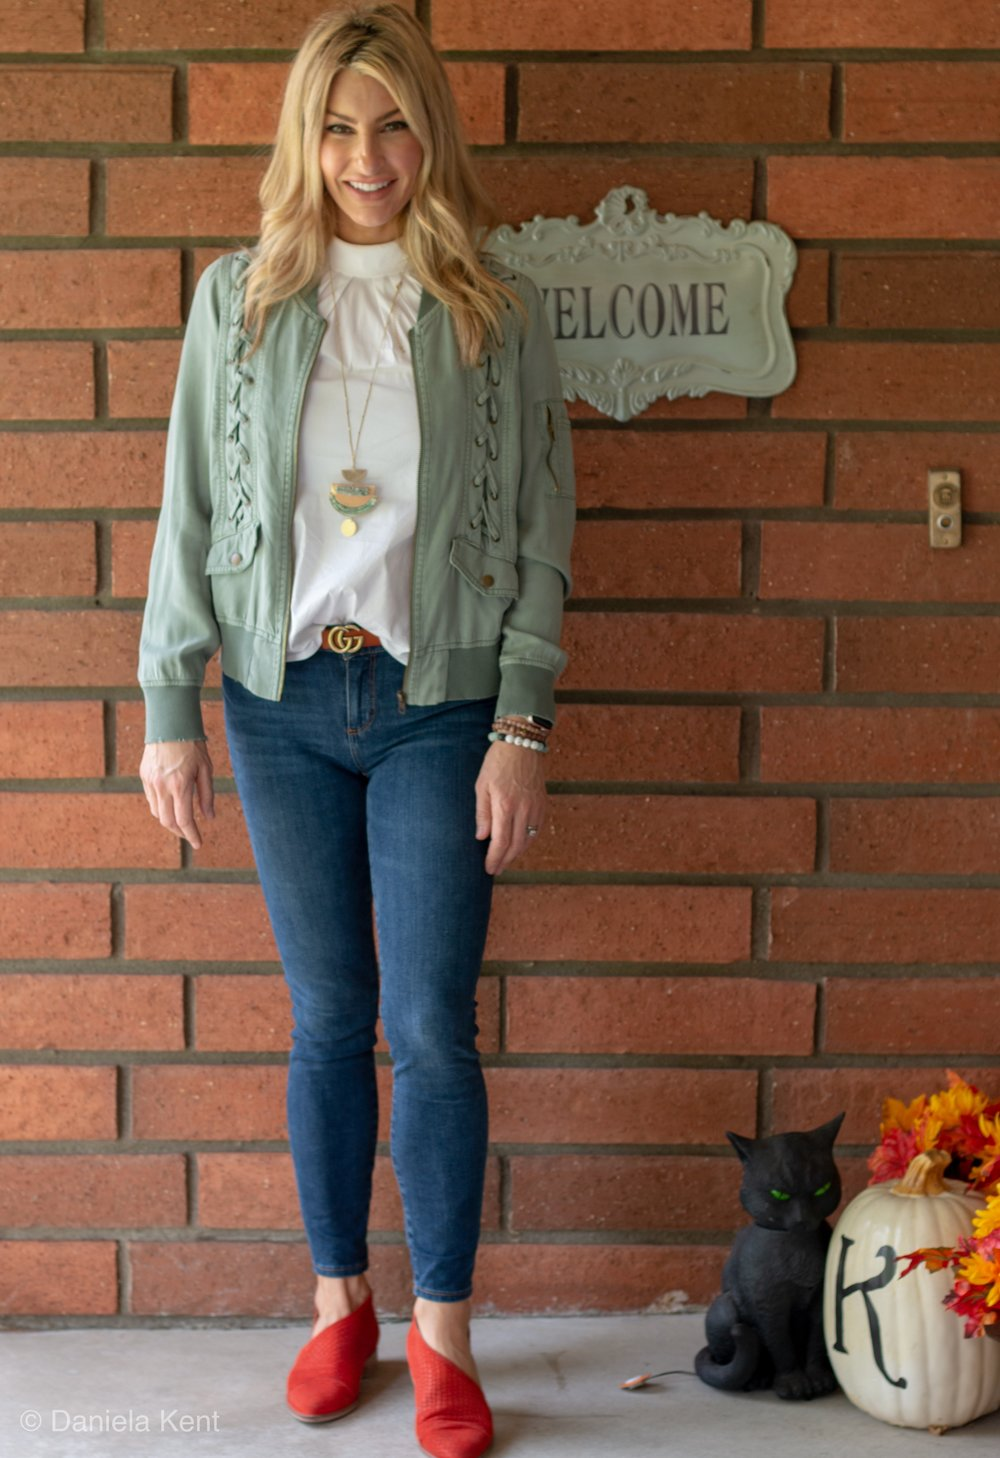 Green lace-up jacket, Dylan Grace Boutique, Glendora, CA.